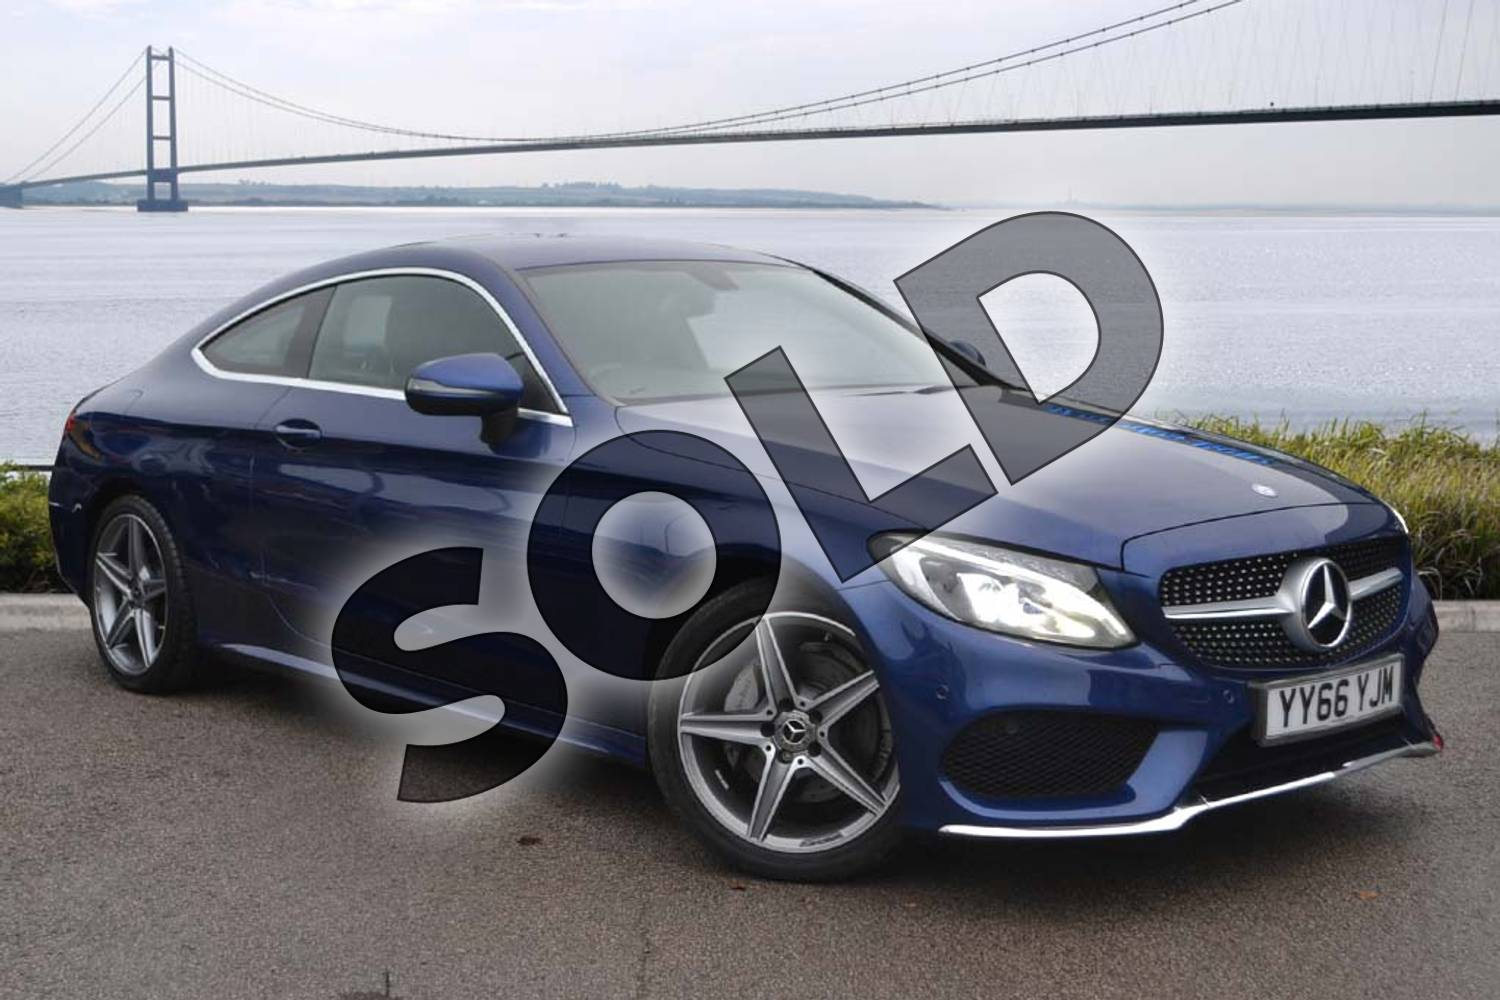 2016 Mercedes-Benz C Class Diesel Coupe Diesel C220d AMG Line 2dr Auto in Brilliant Blue Metallic at Mercedes-Benz of Hull